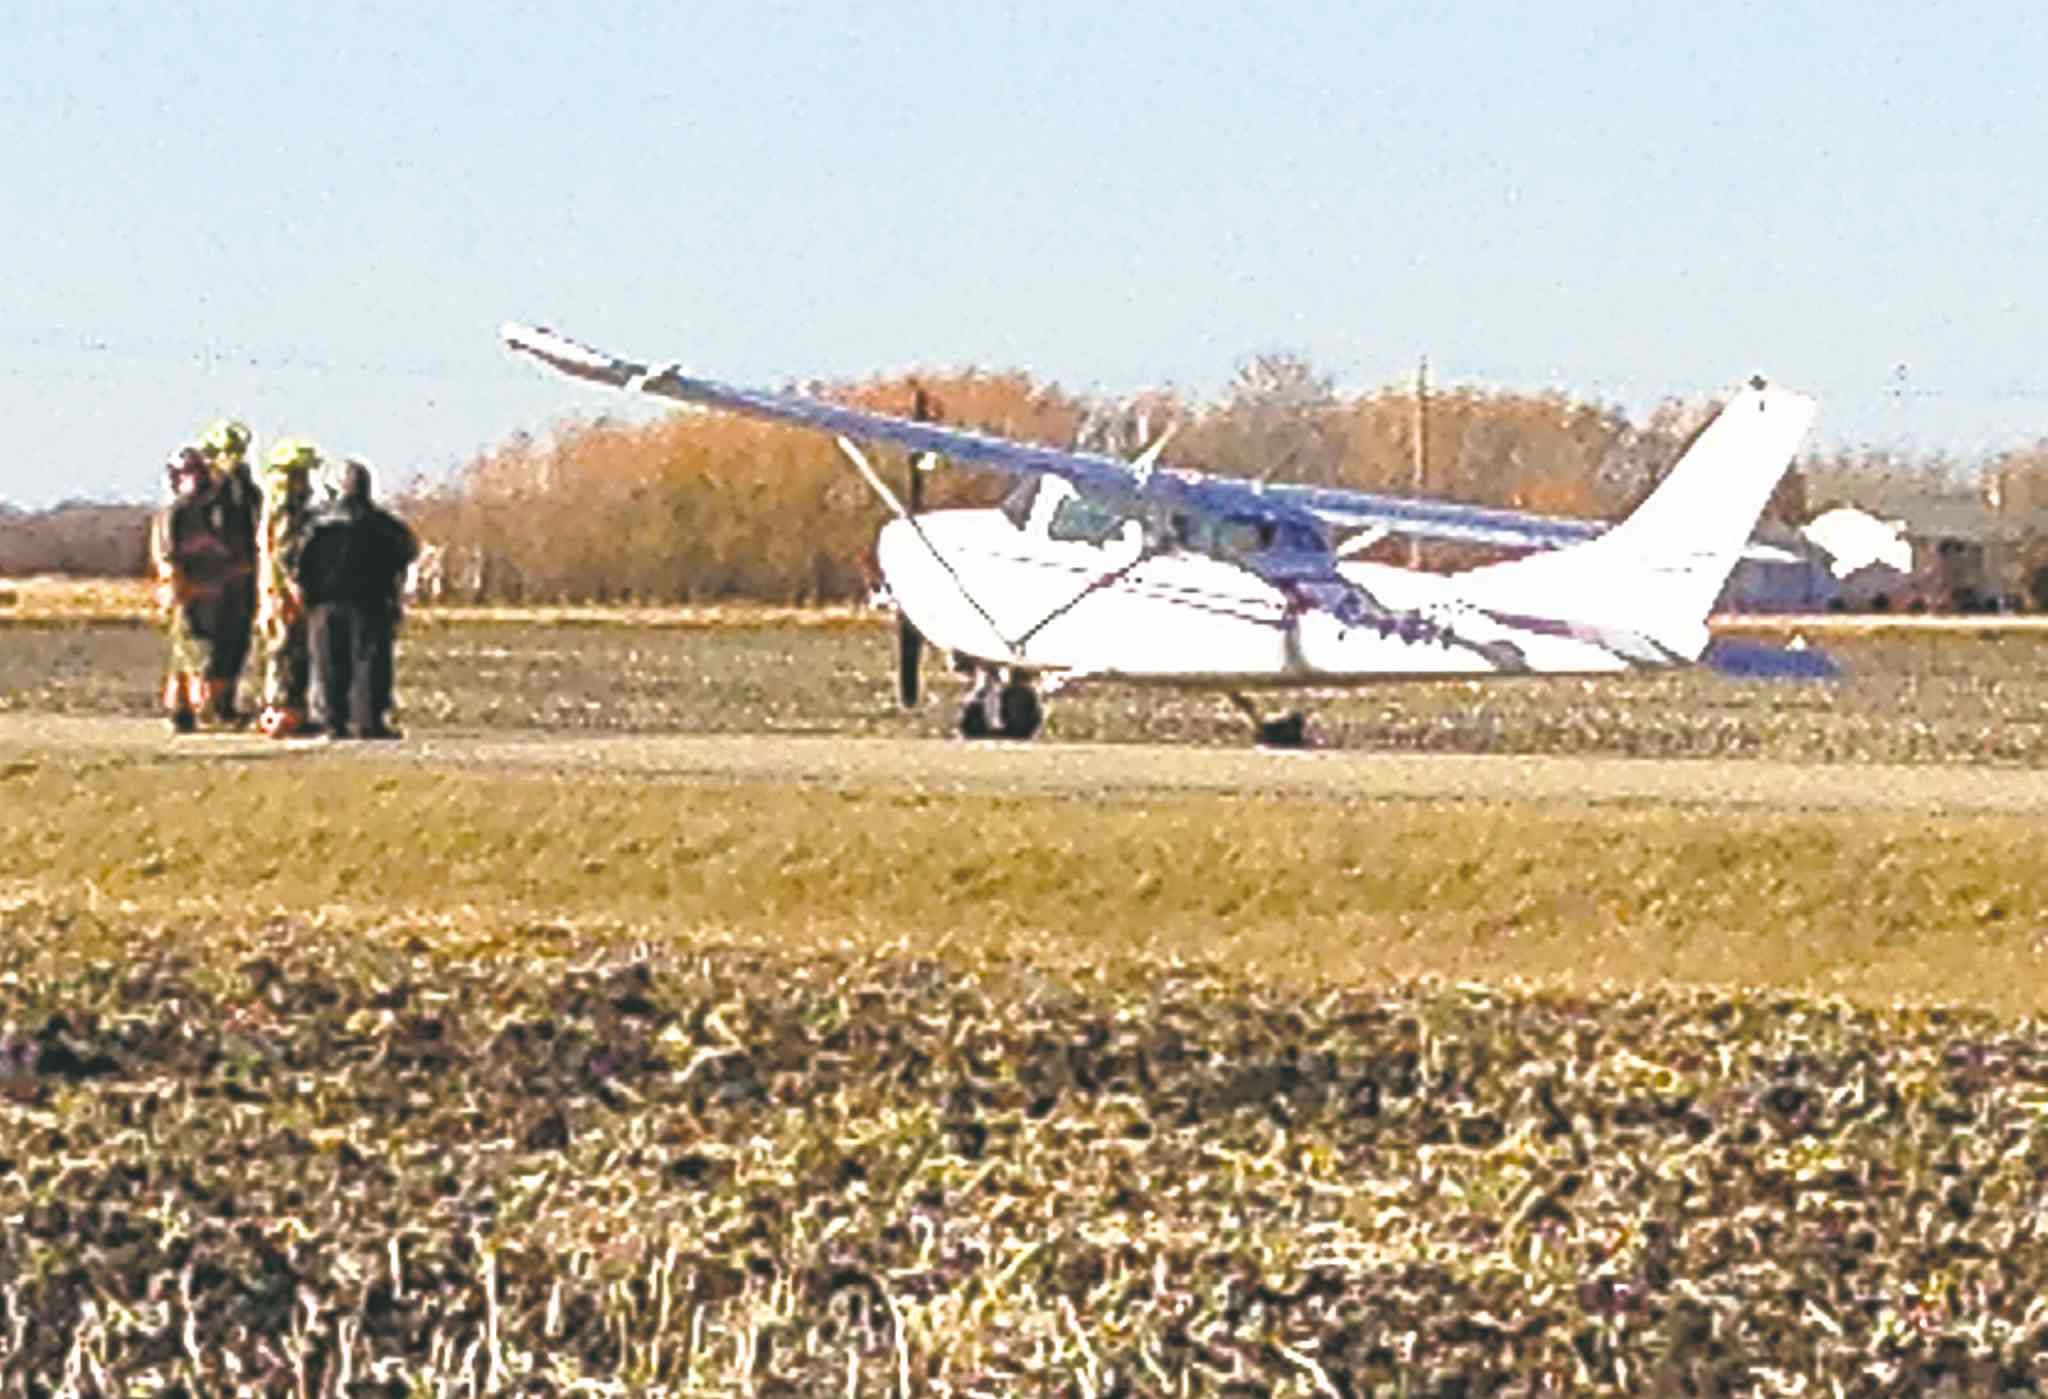 The pilot landed his engine-troubled plane in St. Andrews.